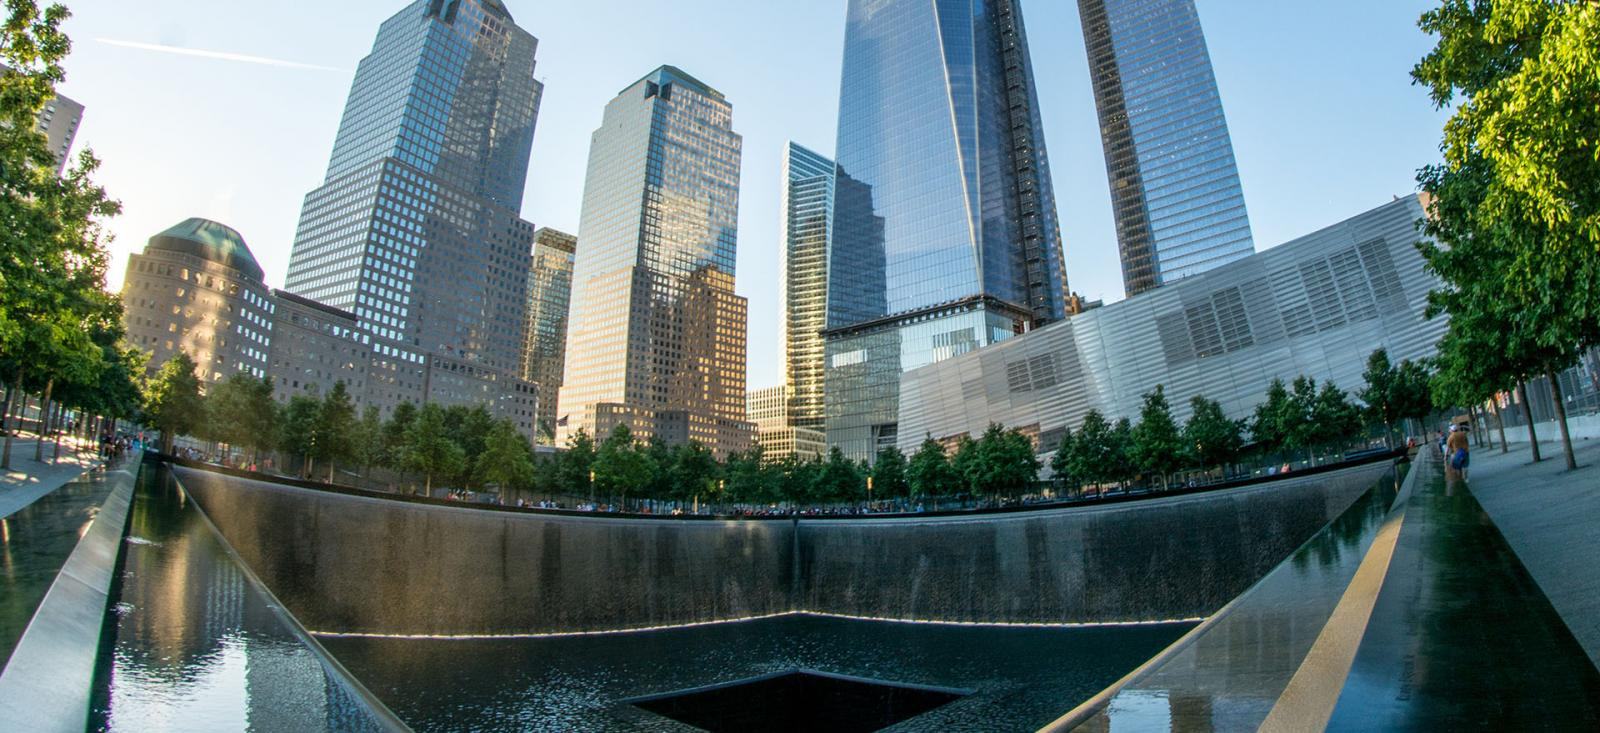 Ground Zero in New York